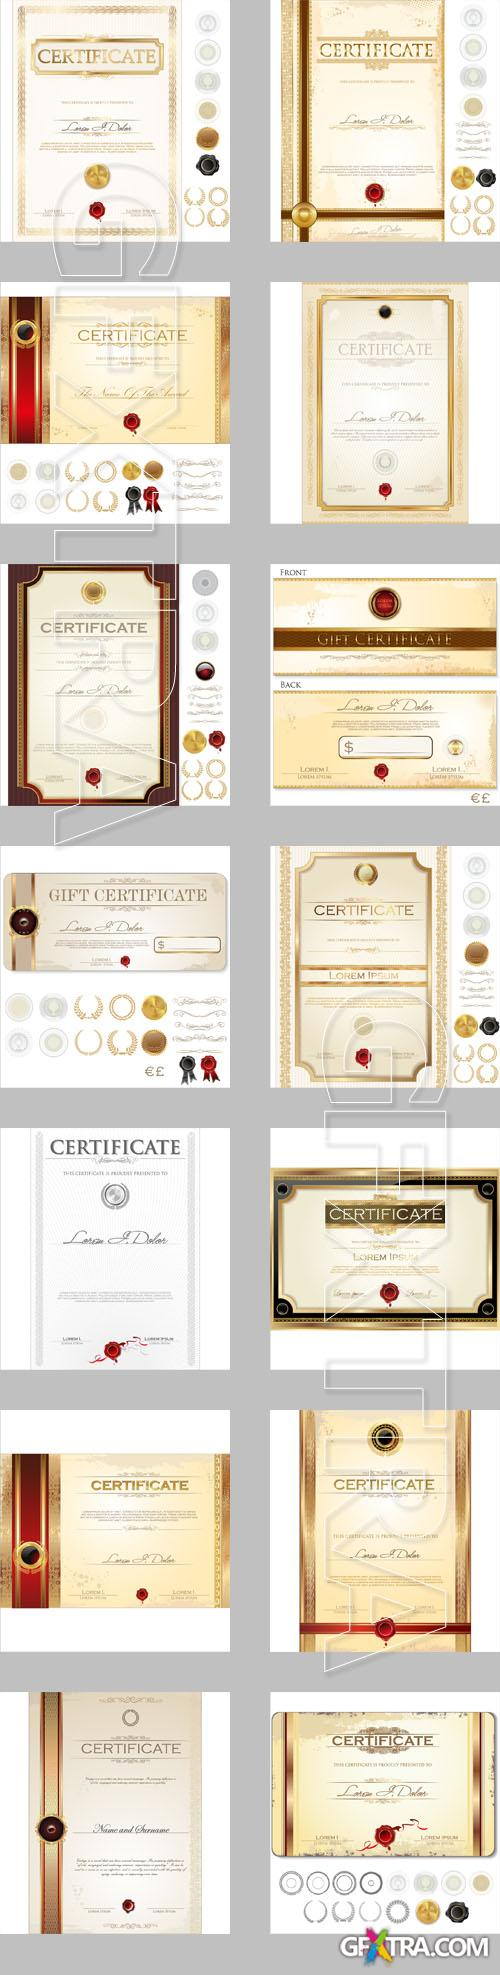 how to make a diploma certificate in photoshop